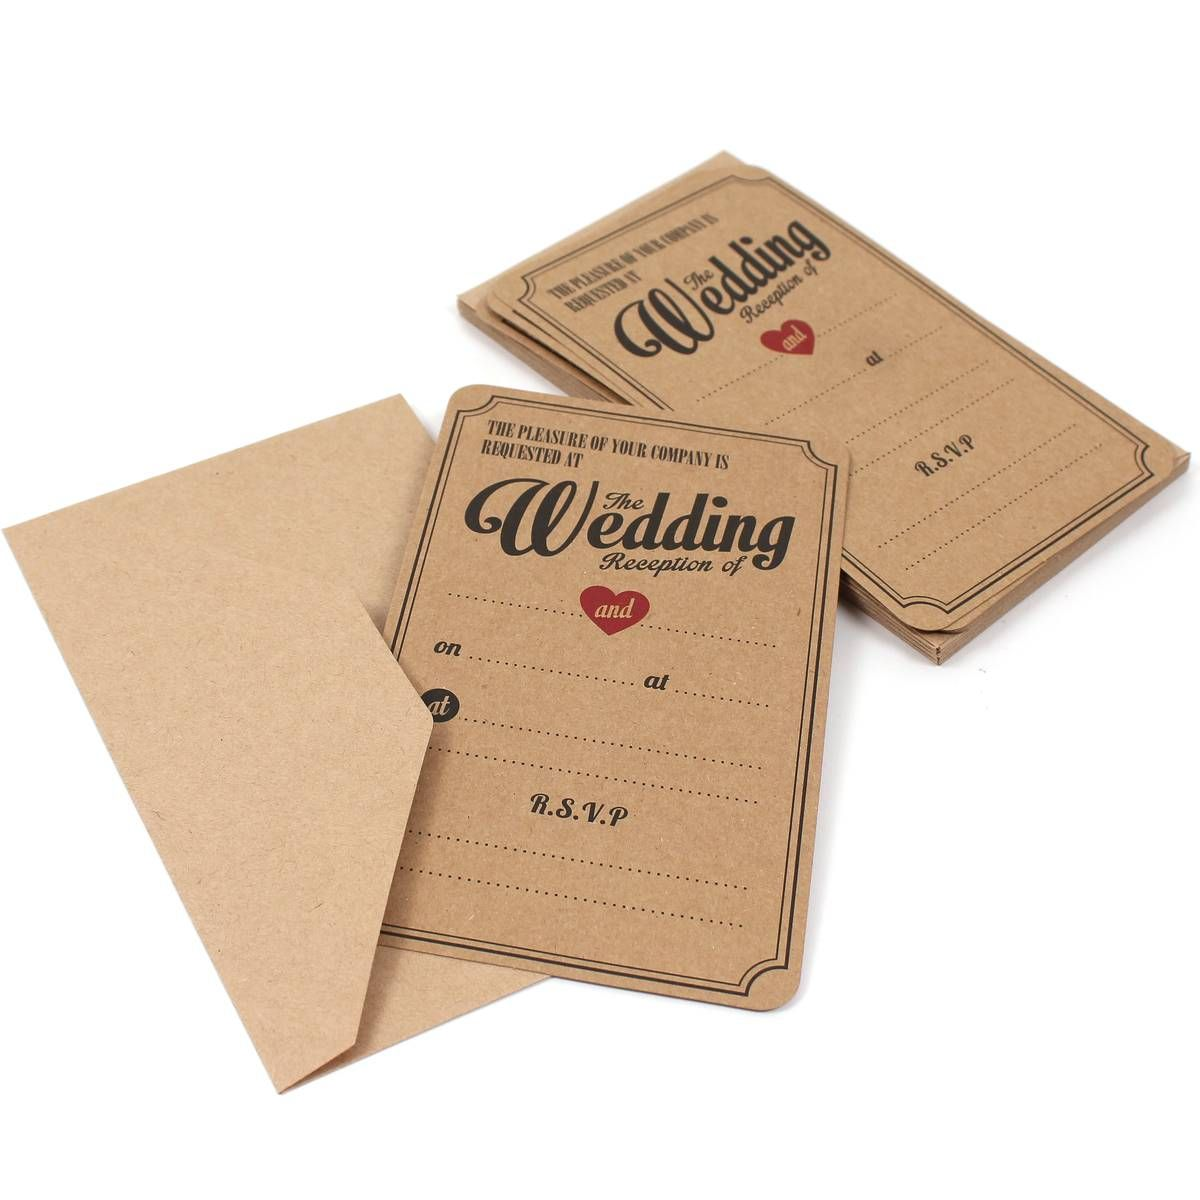 Cheap Wedding Invitations Packs Be Sure To Consult The Owner To See If You Will Be Ab Evening Wedding Invitations Wedding Invitations Wedding Invitations Diy